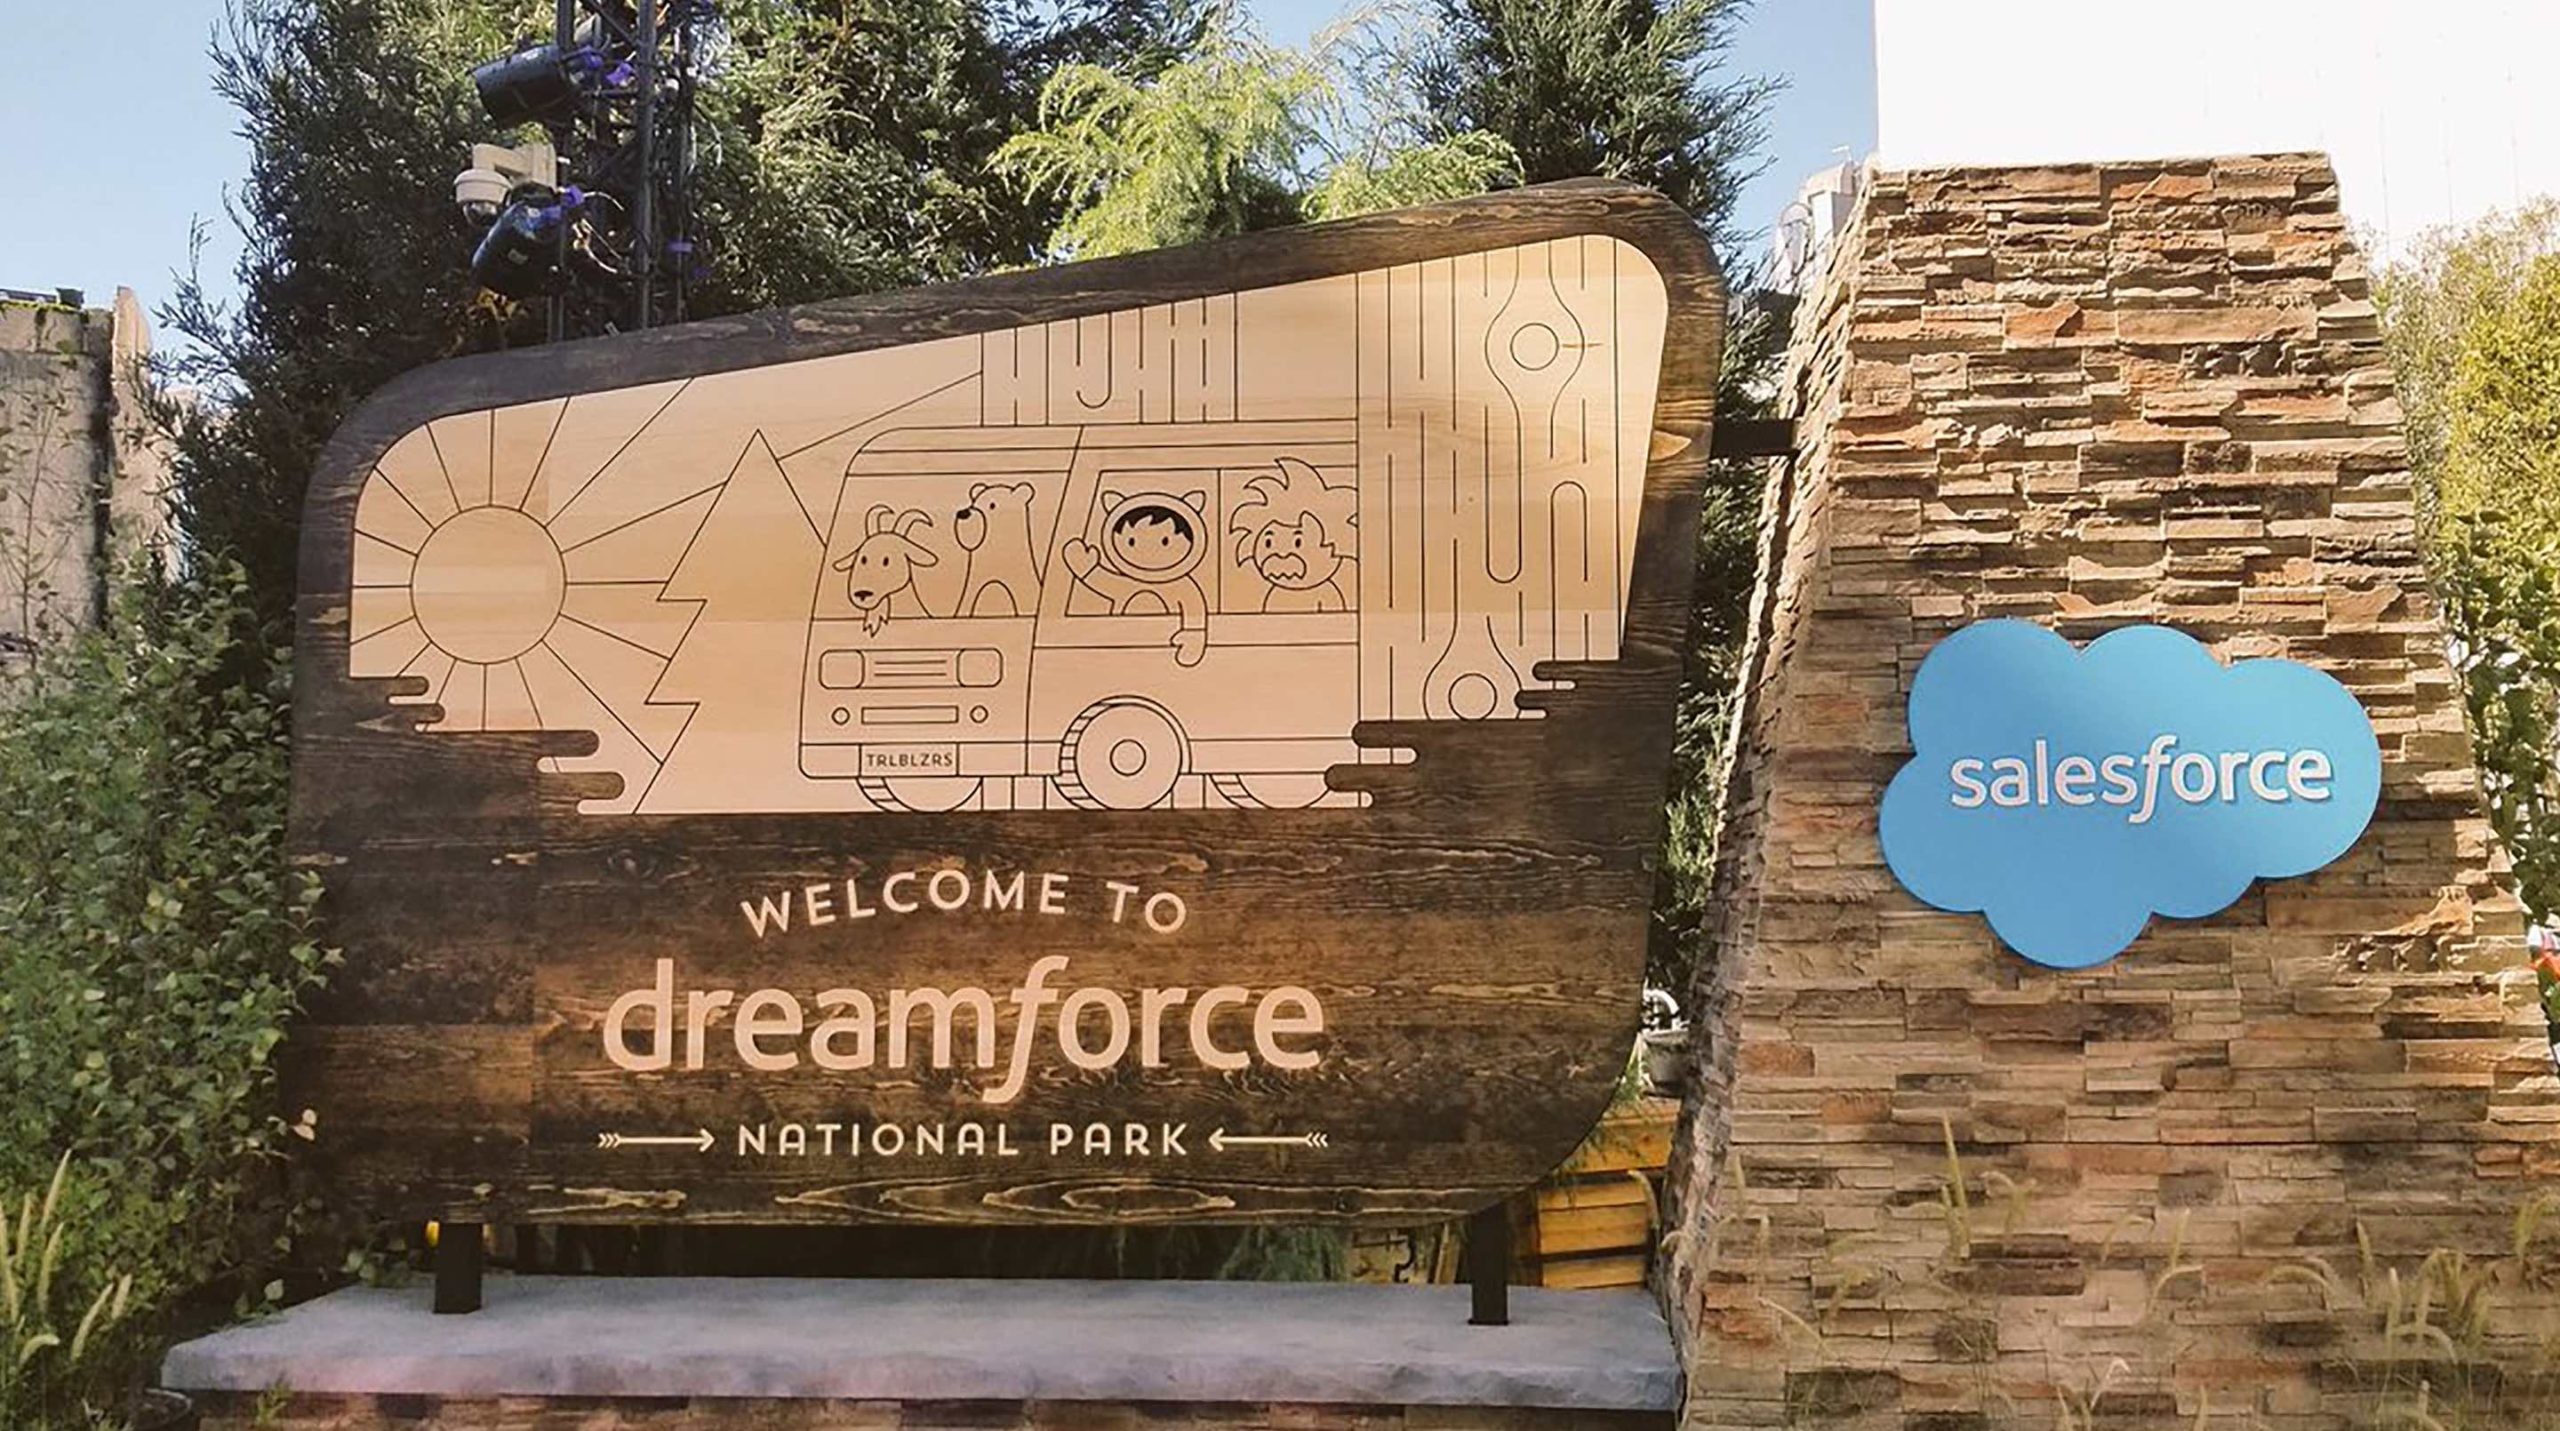 blog-banner-The-trailhead-to-customer-satisfaction-is-Dreamforce-2018